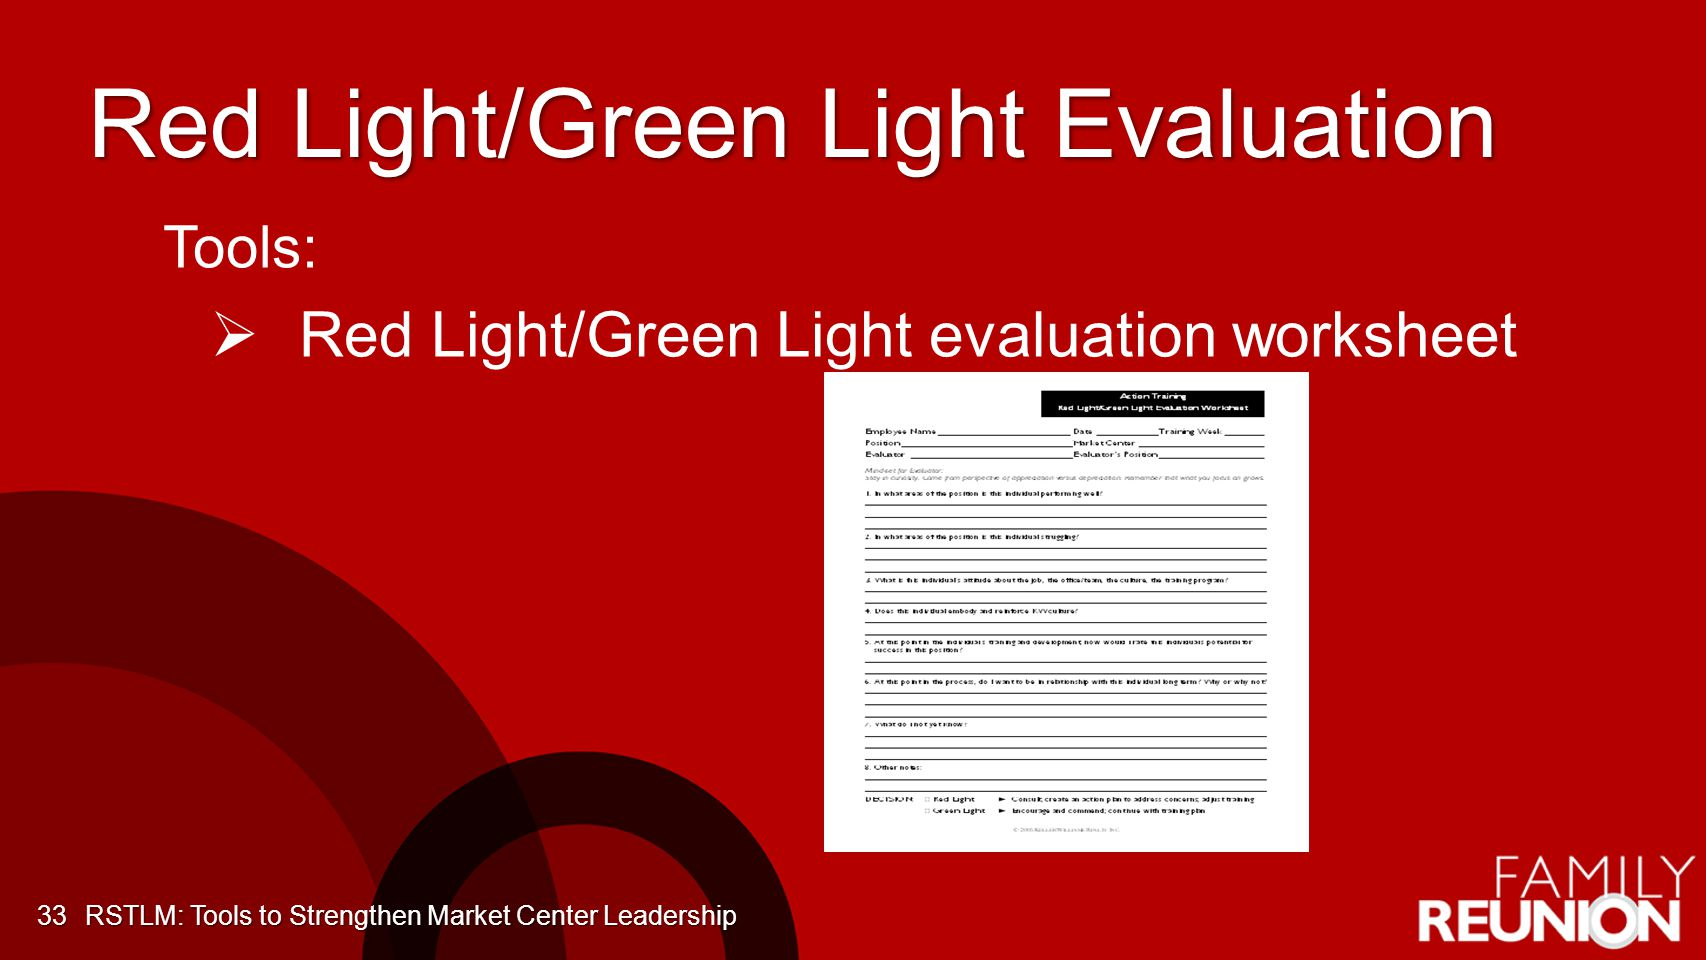 Red Light/Green Light Evaluation 33 Tools: Red Light/Green Light evaluation worksheet RSTLM: Tools to Strengthen Market Center Leadership